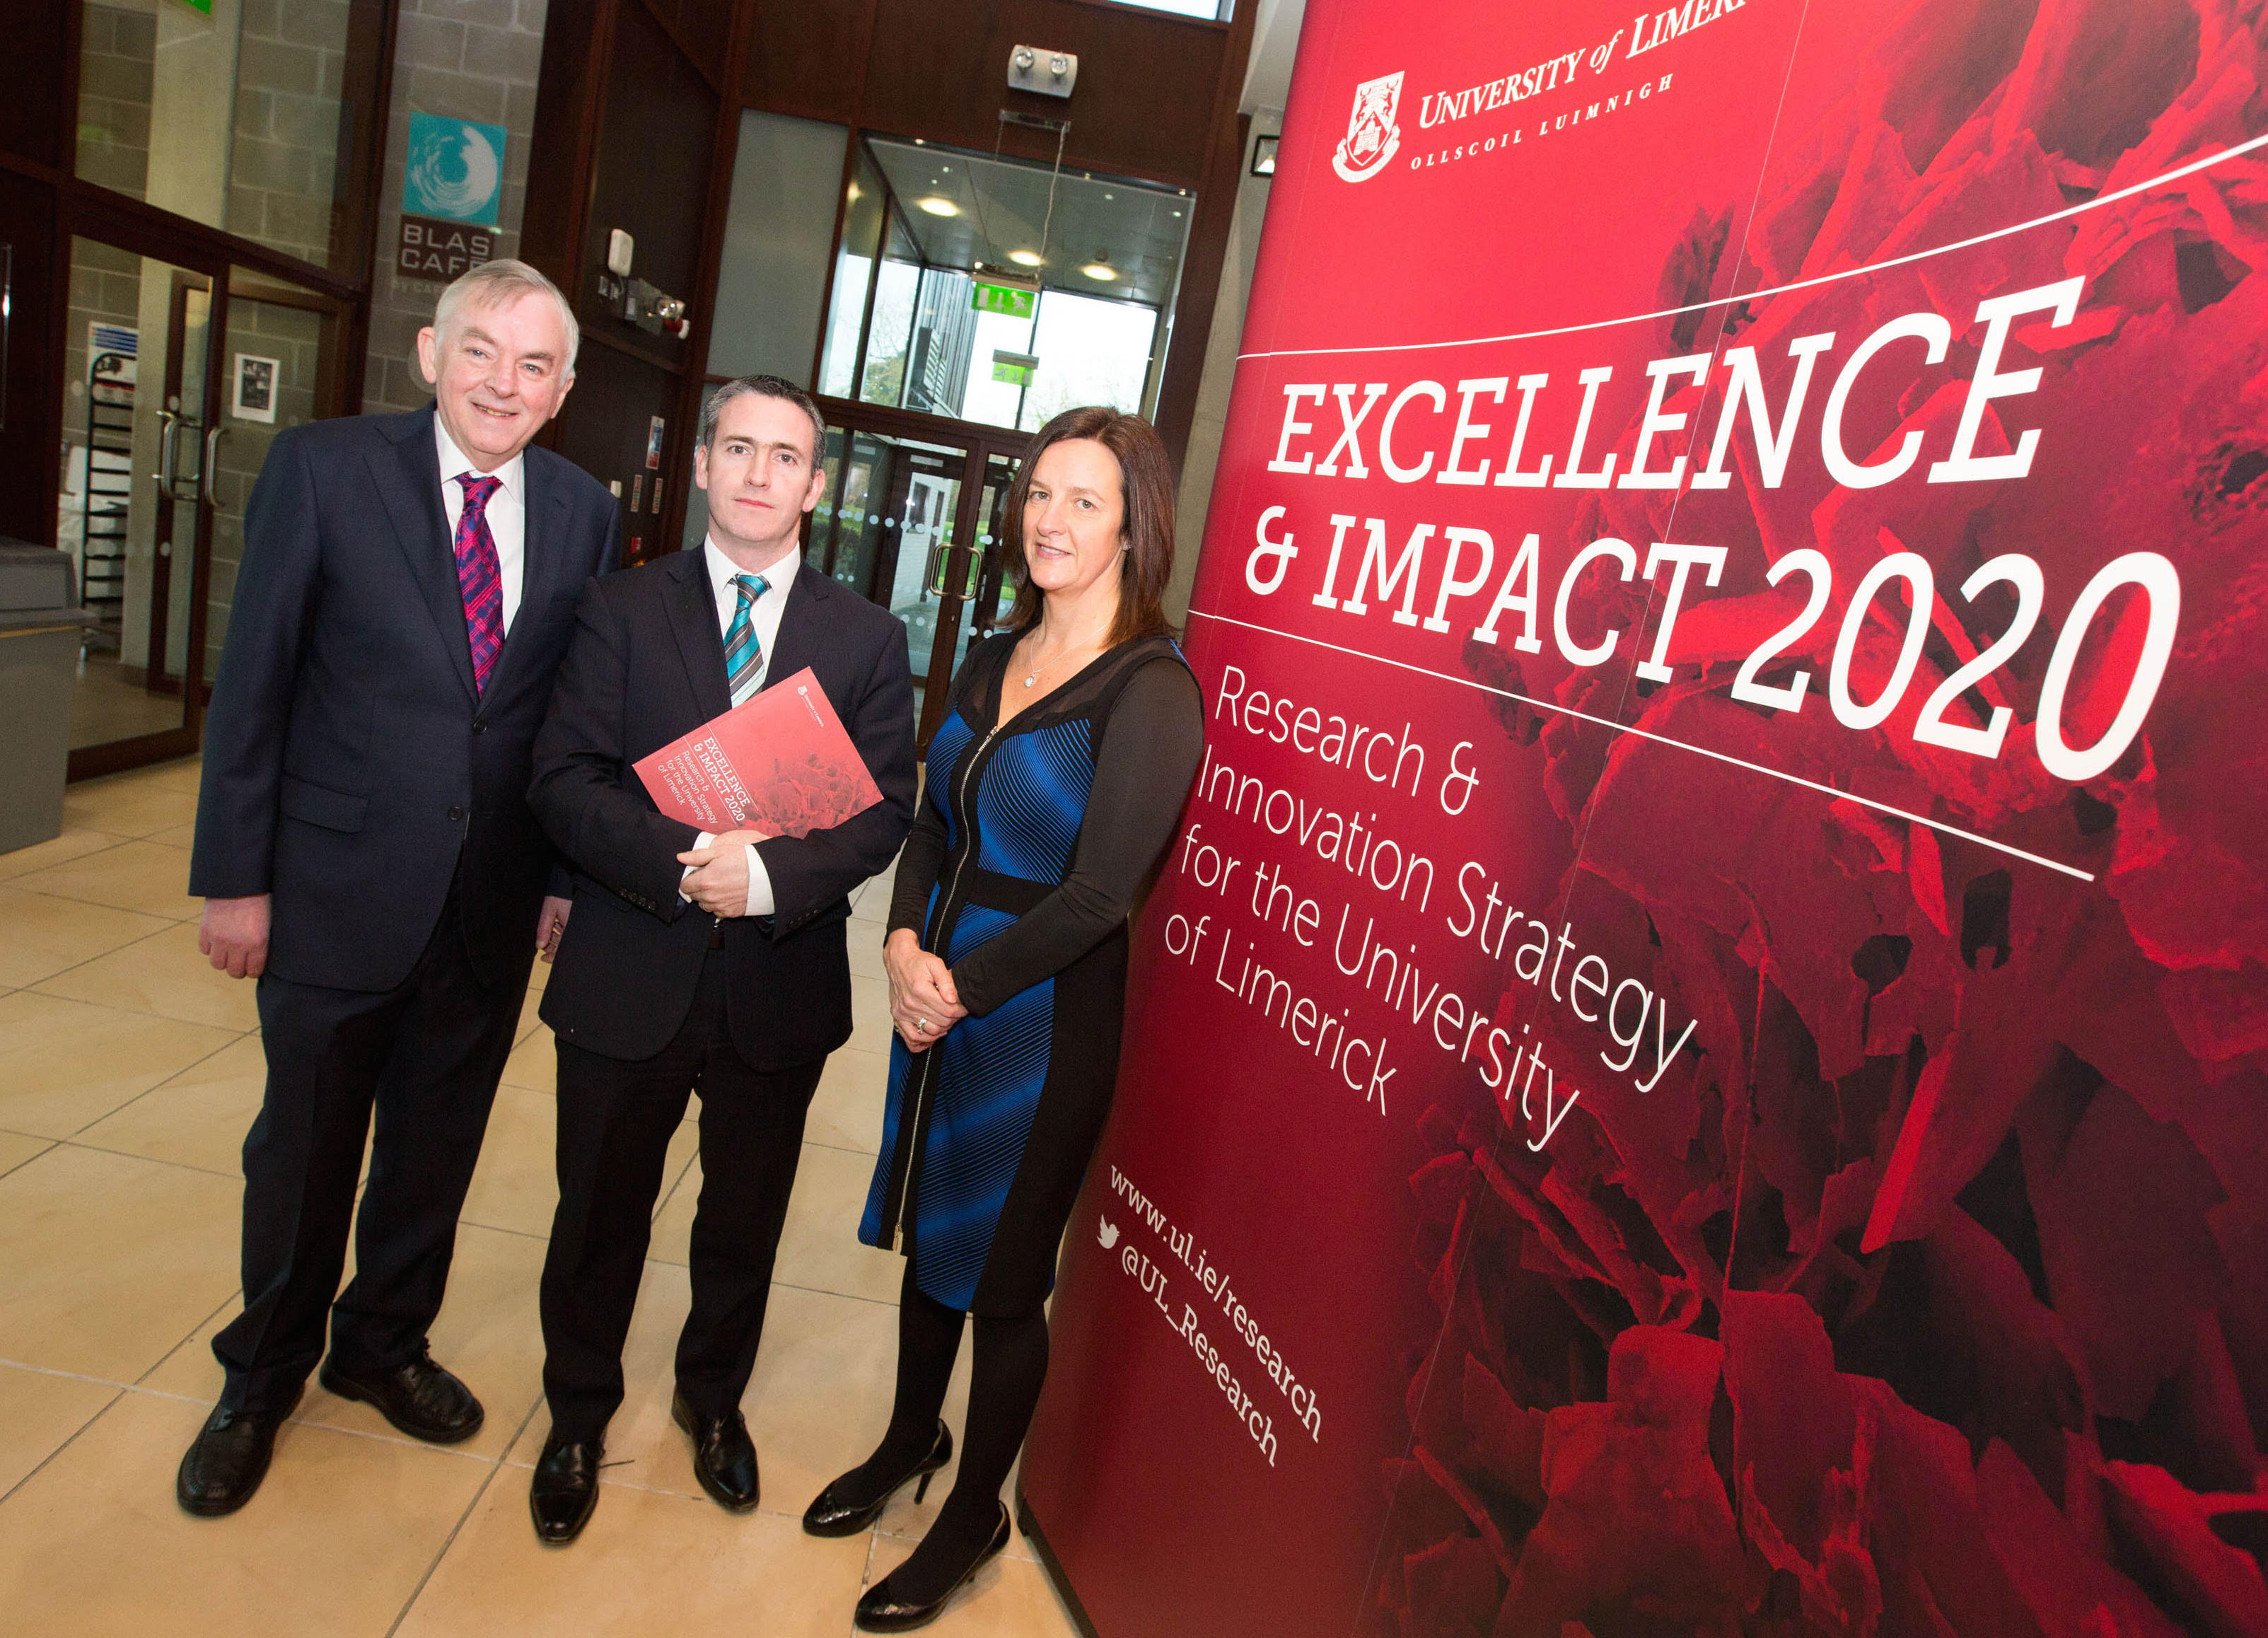 UL Excellence and Impact 2020